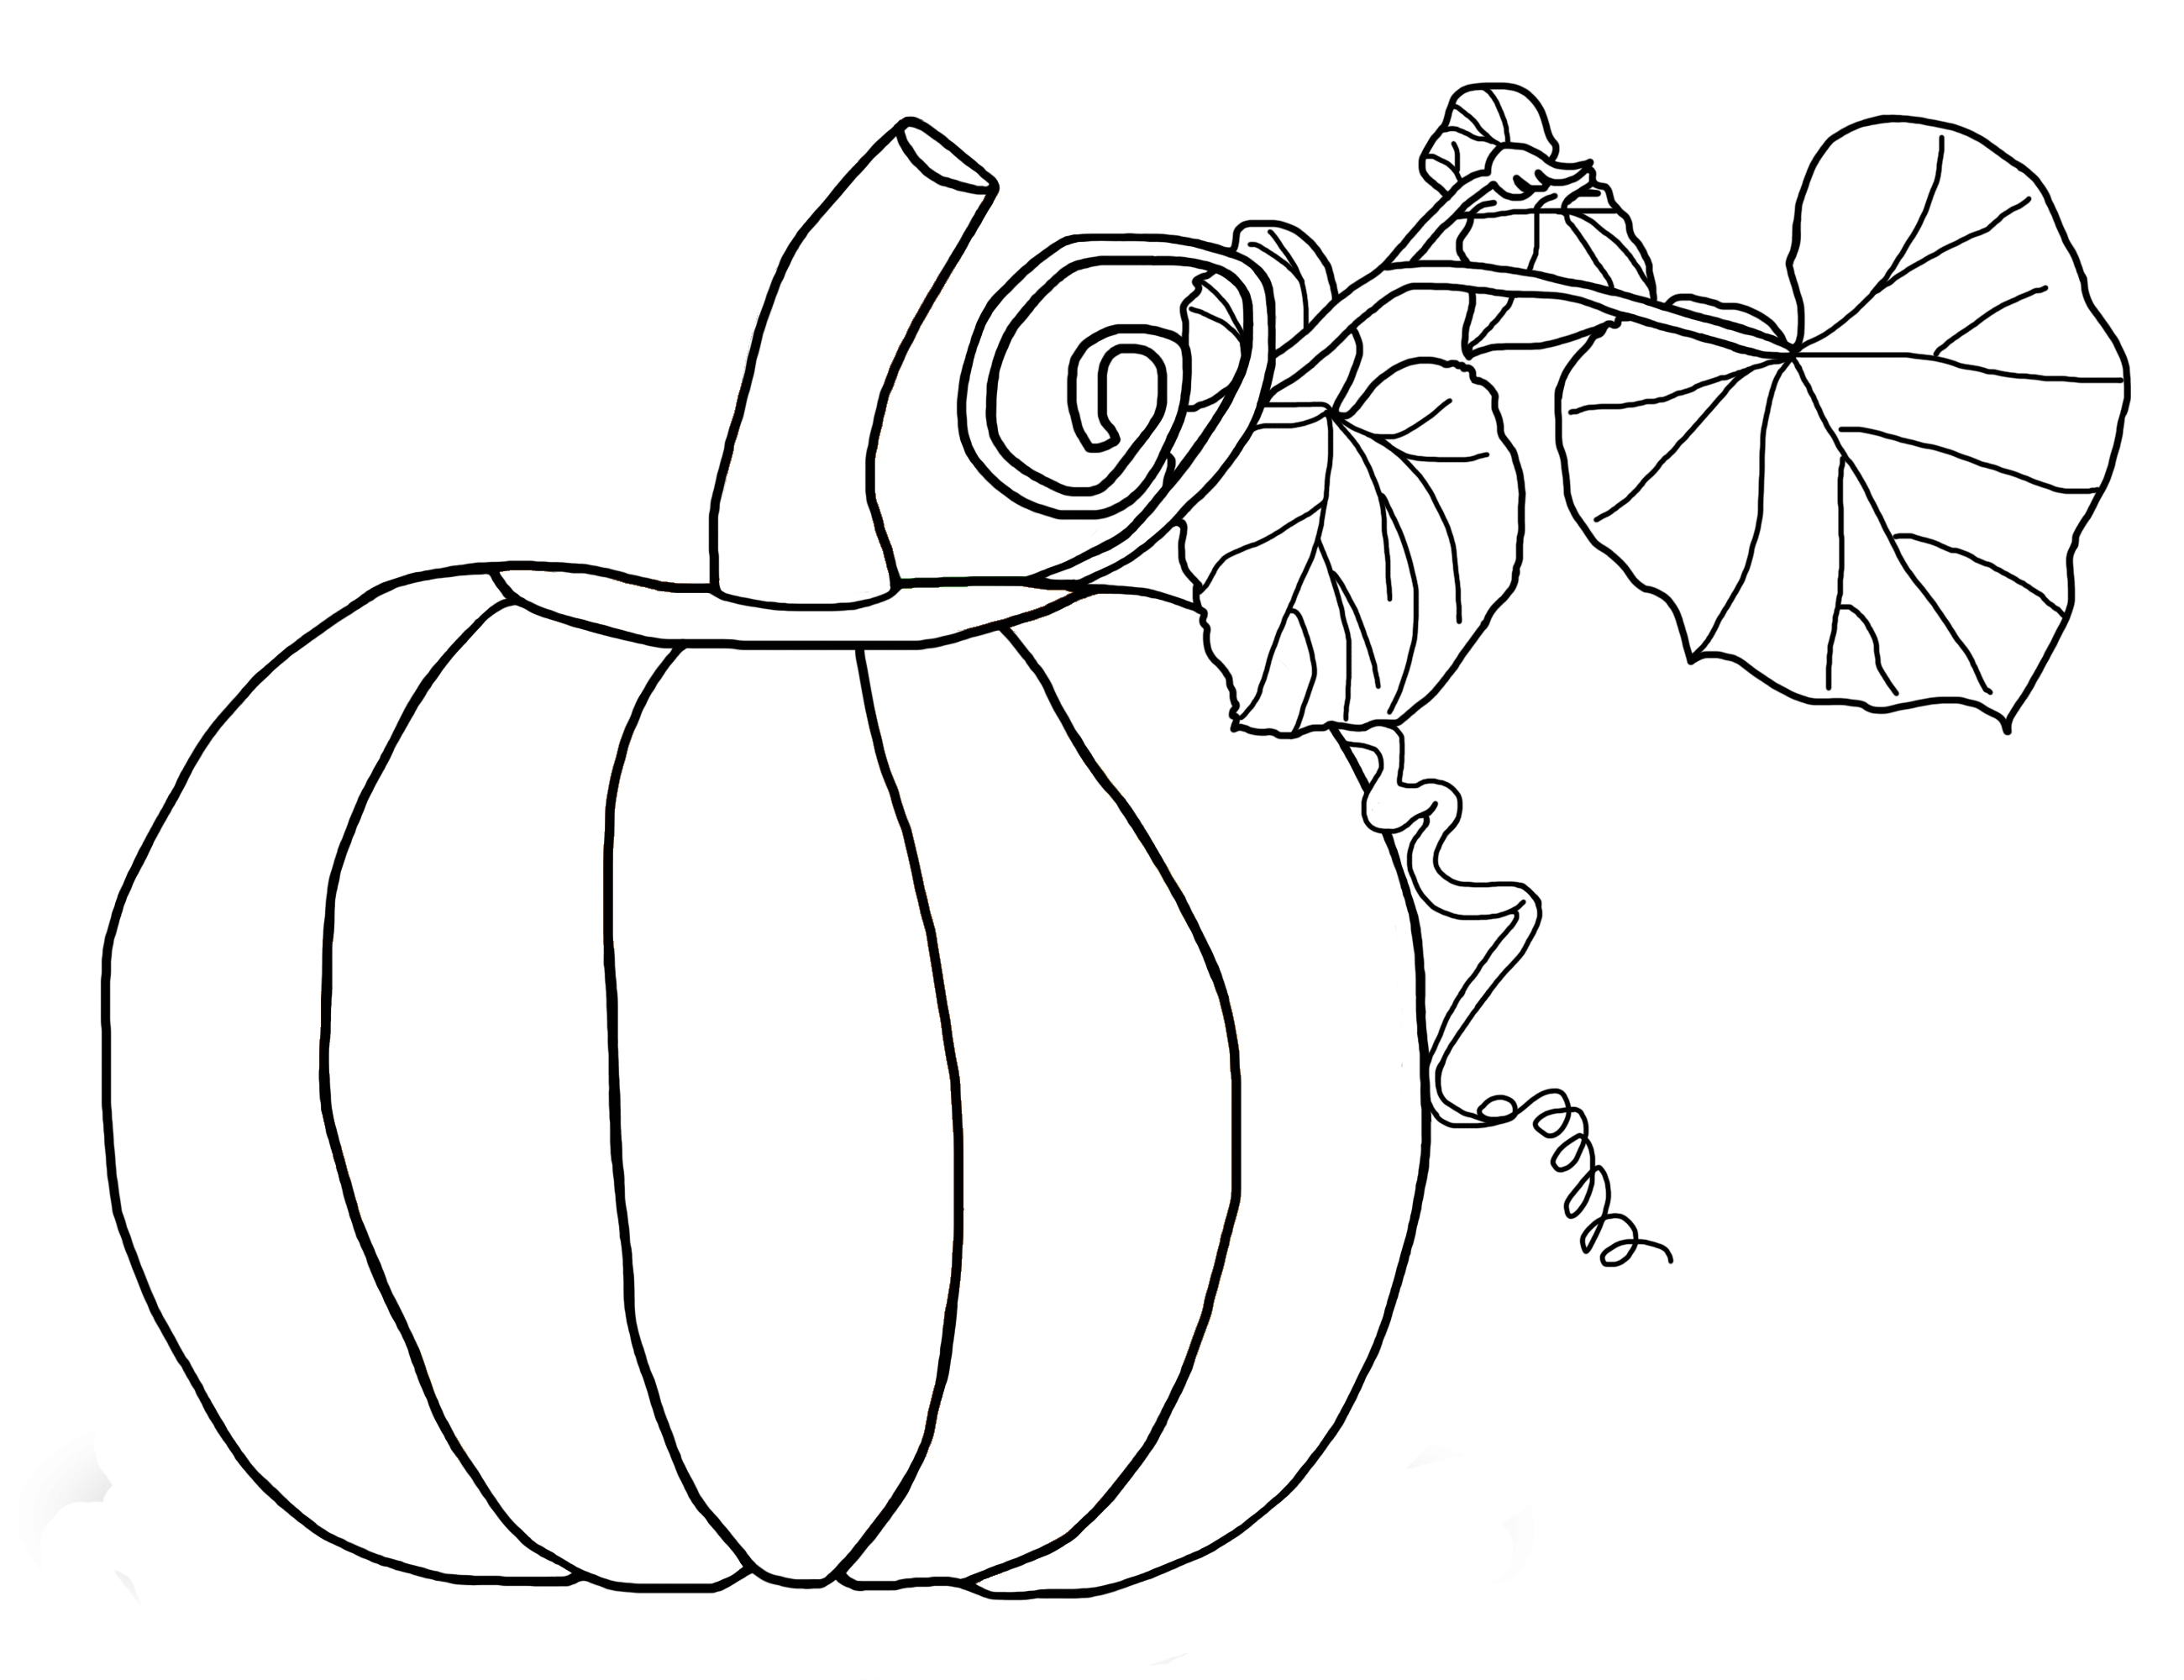 how to draw a pumpkin leaf pumpkin plant drawing at getdrawings free download to leaf draw pumpkin a how